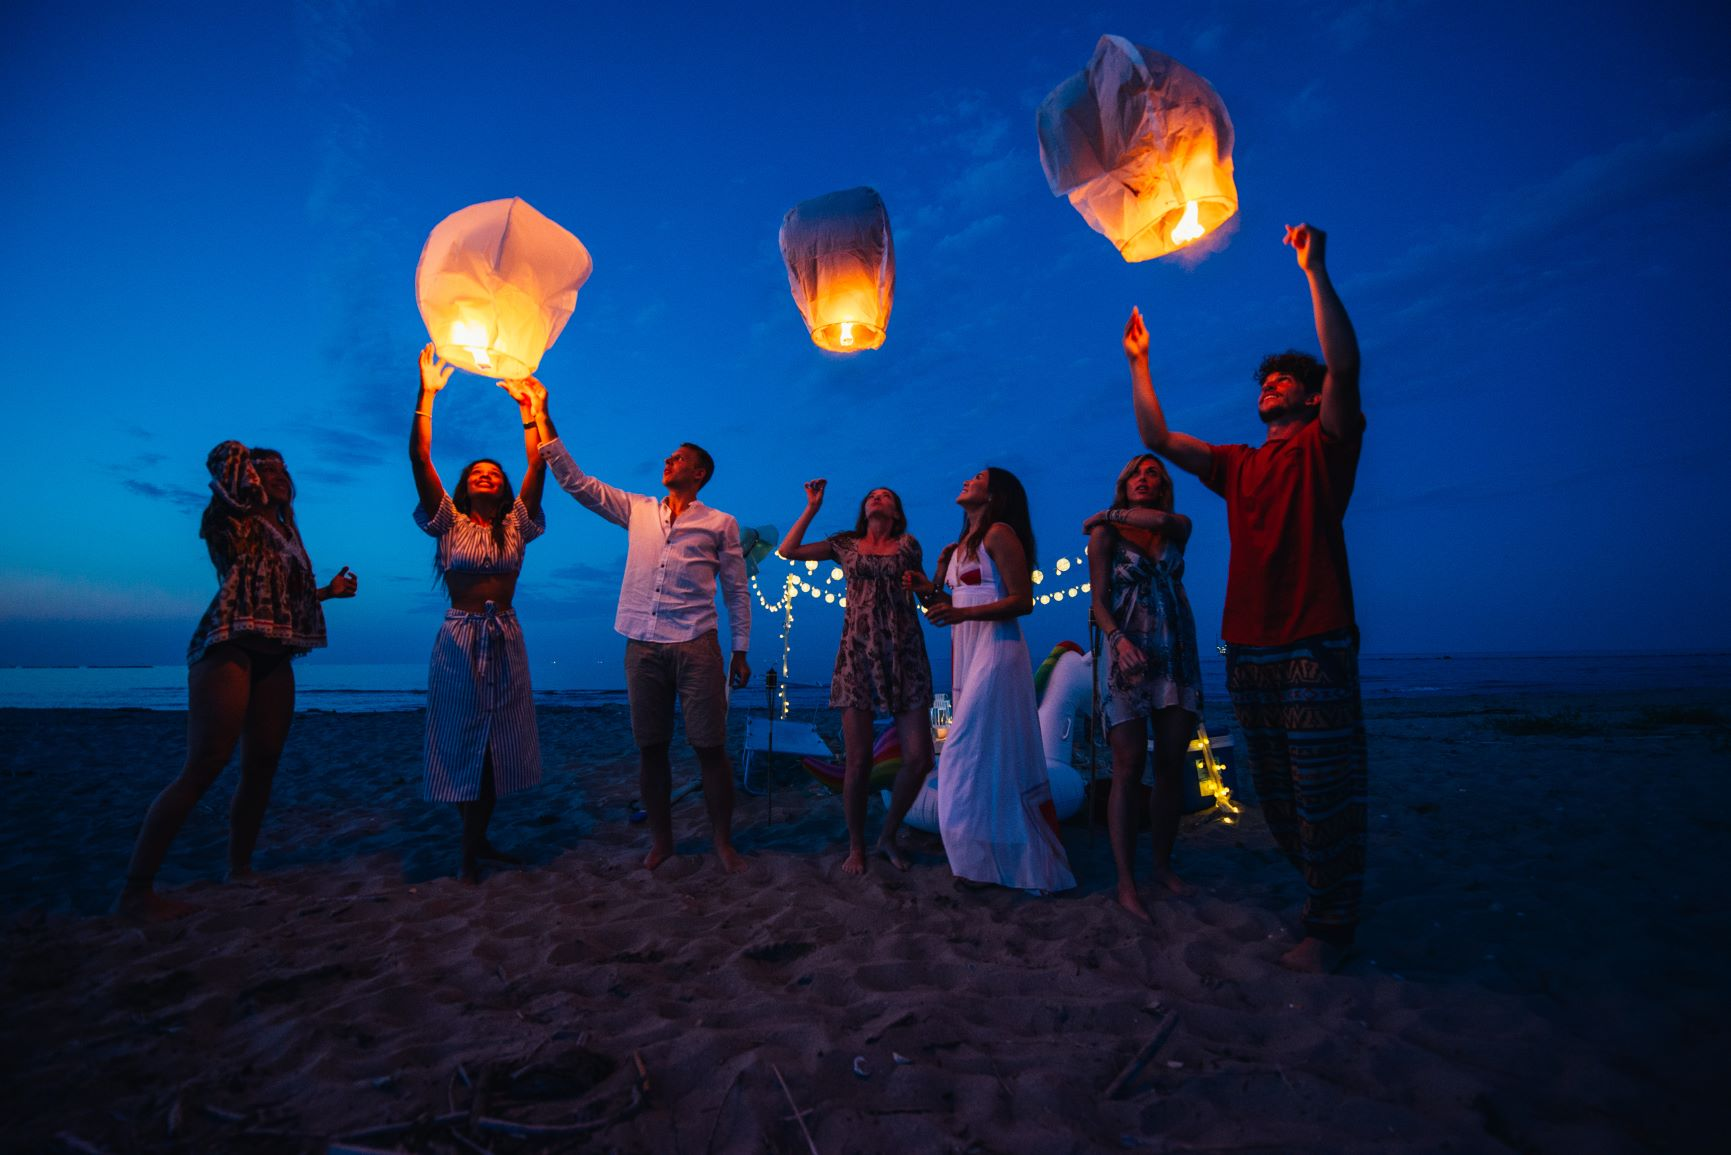 The Best Sky Lanterns For Weddings Parties And More In 2020 Spy